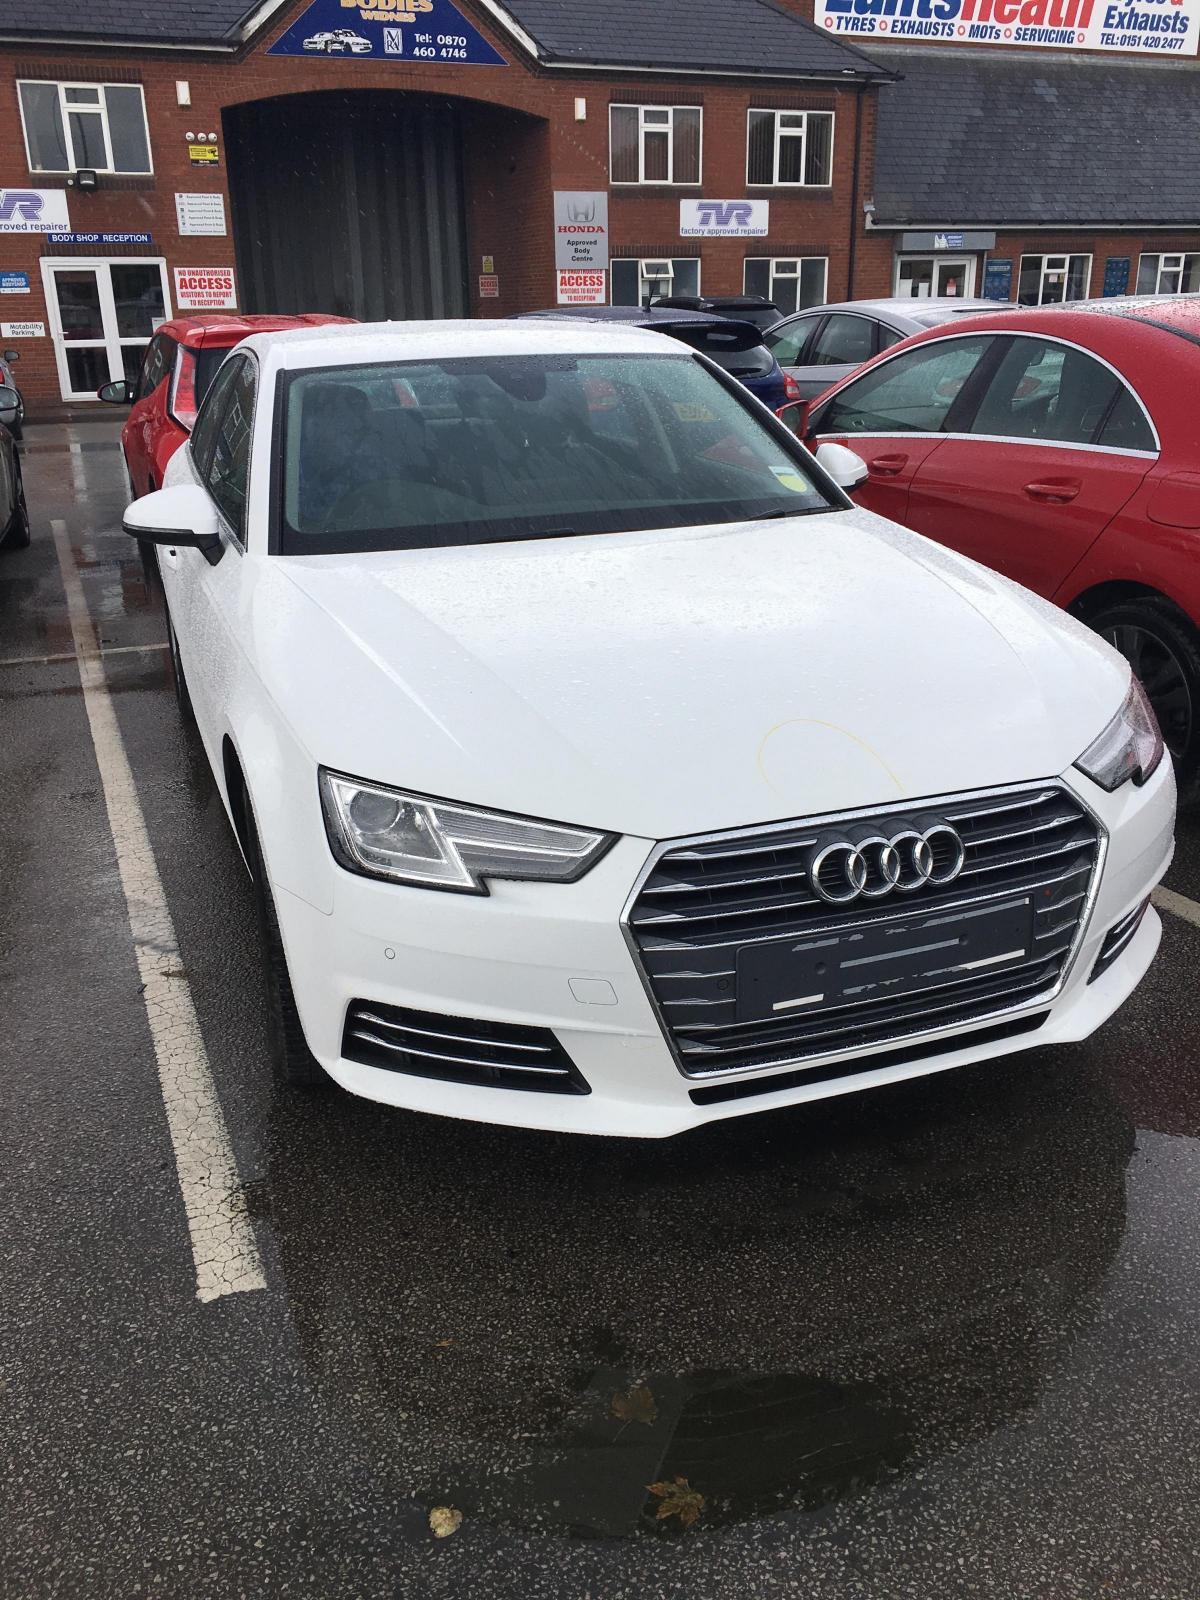 Audi Left At Manchester Airport Meet And Greet Parking Written Off